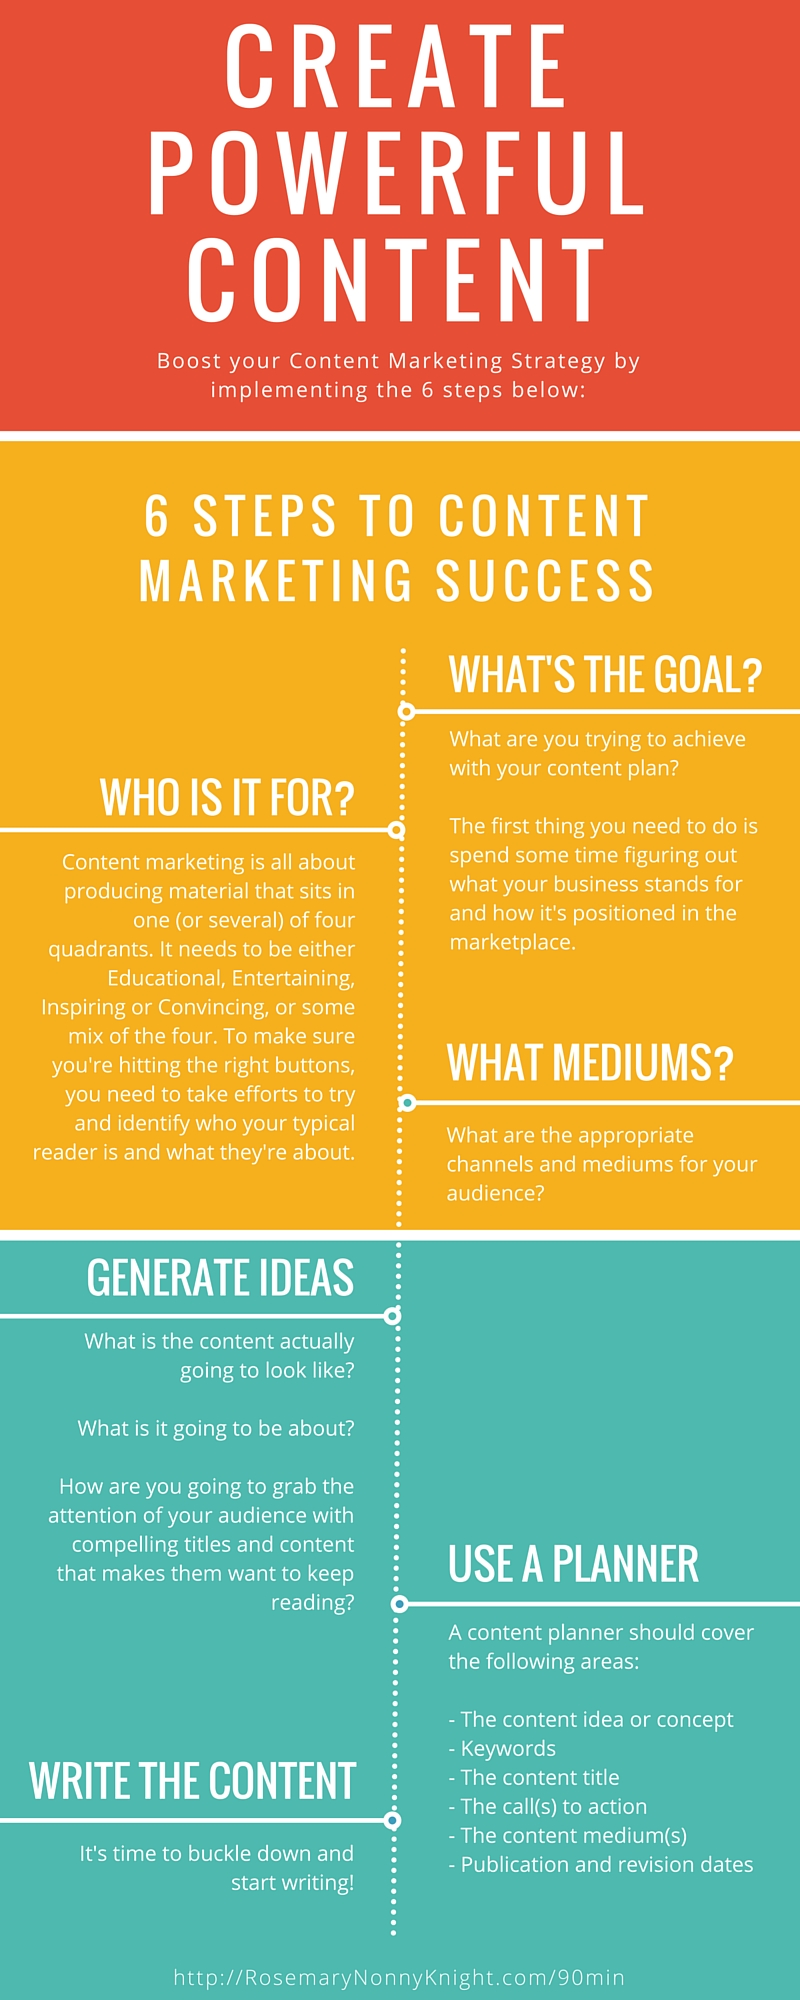 create powerful content infographic